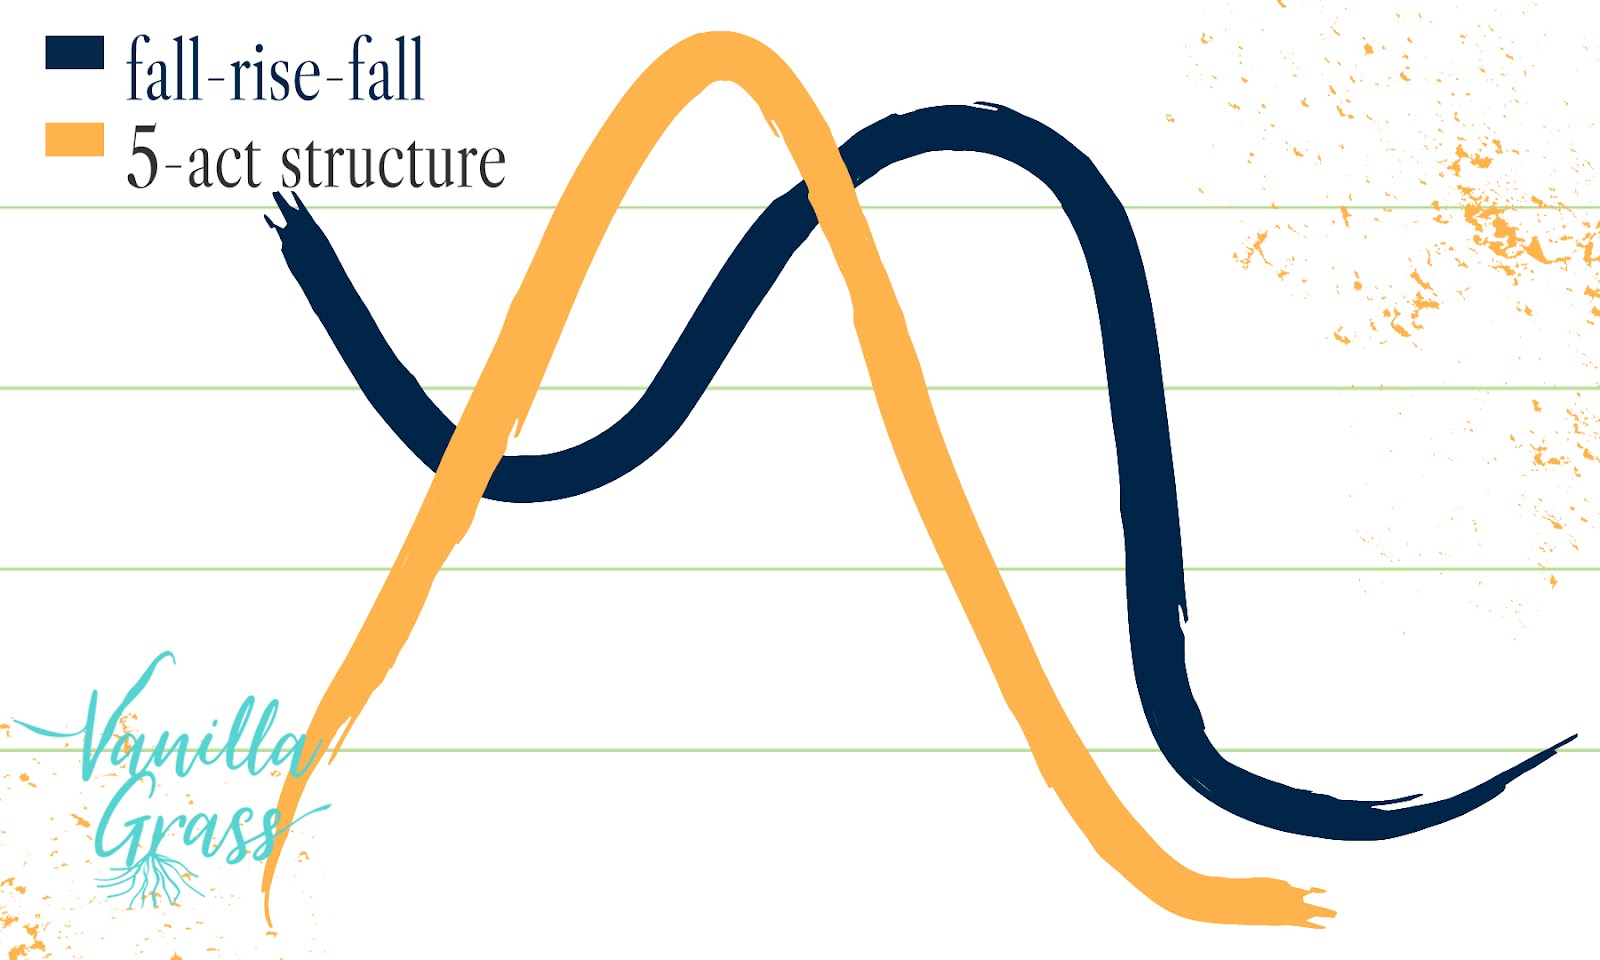 A graph of the fall-rise-fall story with Freytag's 5-act story plot structure.